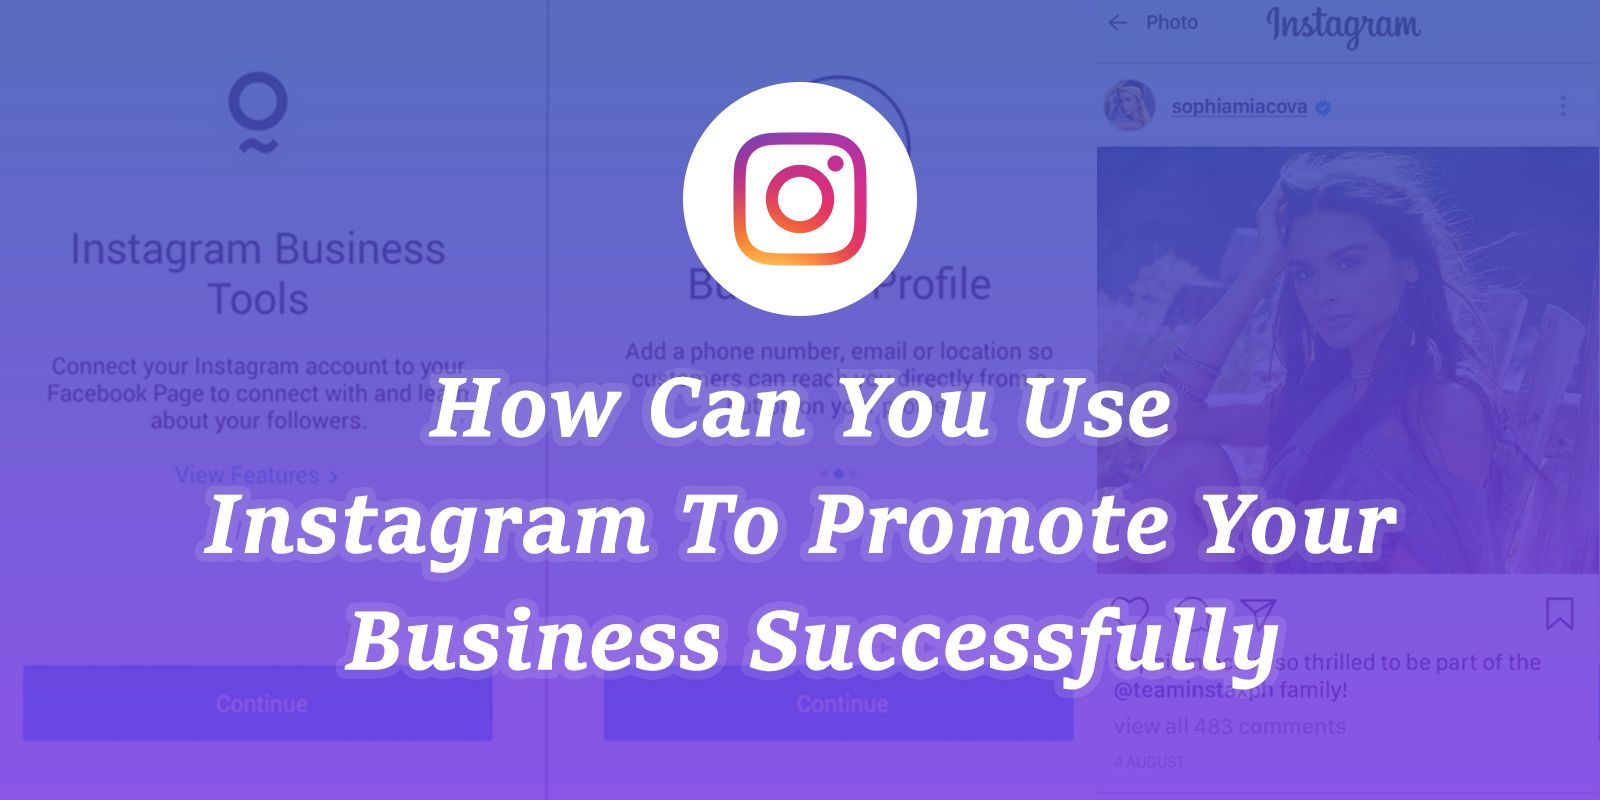 Use Instagram for Business: Tips